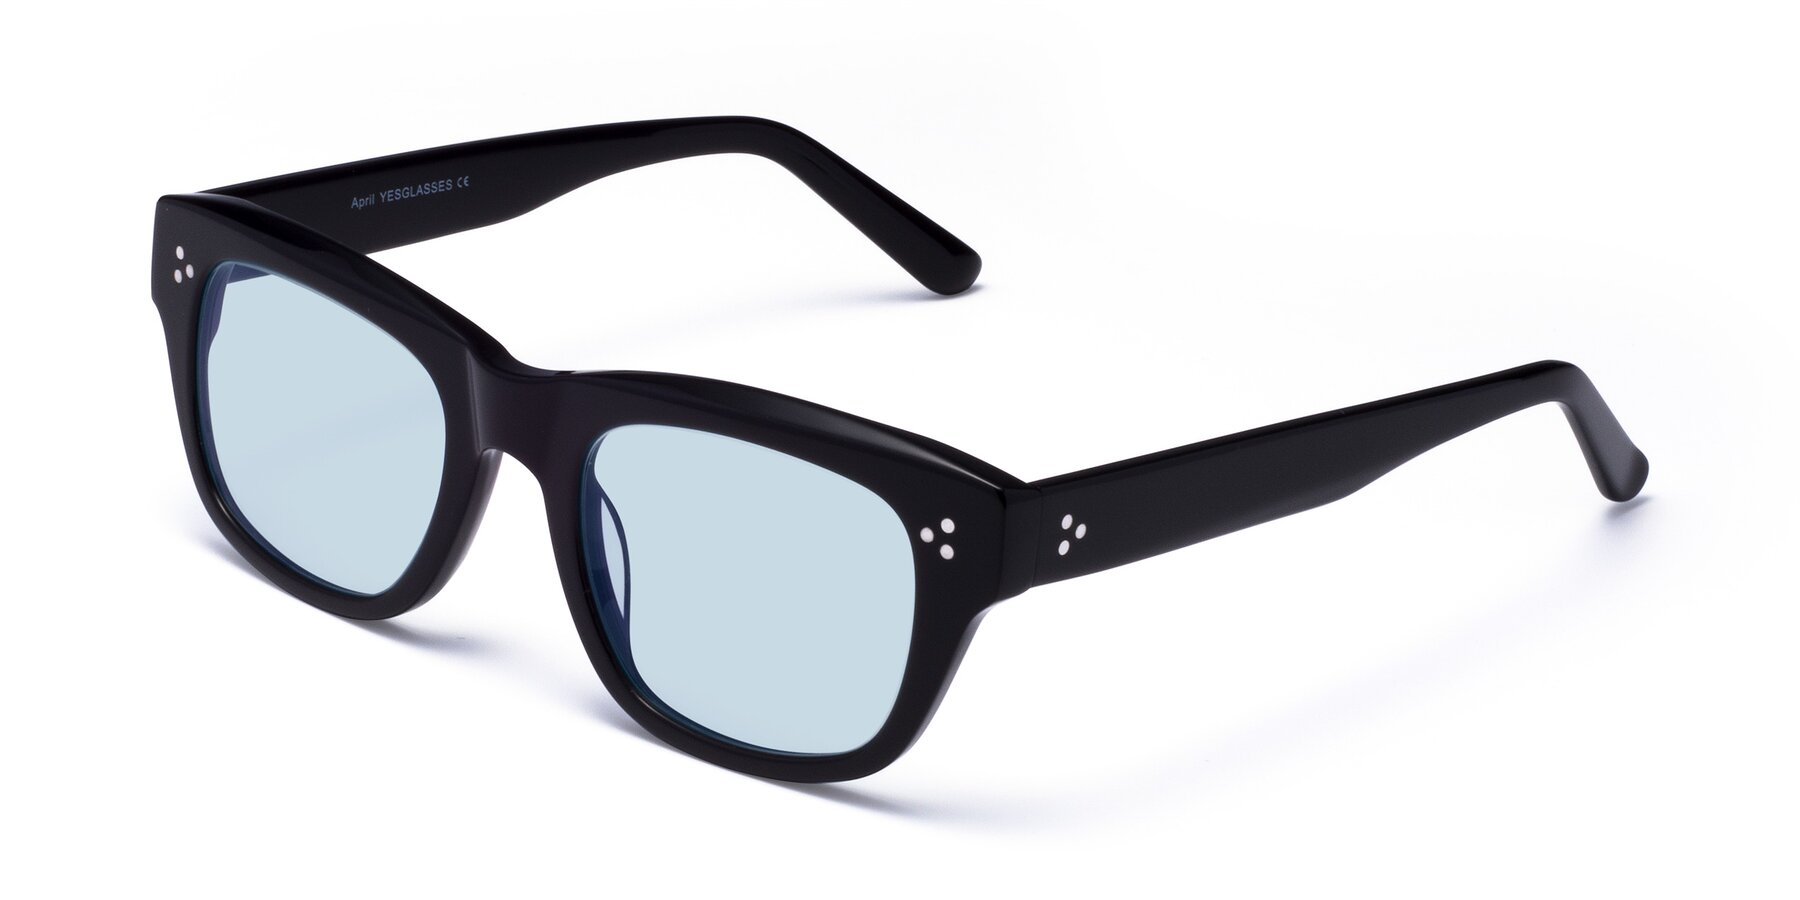 Angle of April in Black with Light Blue Tinted Lenses